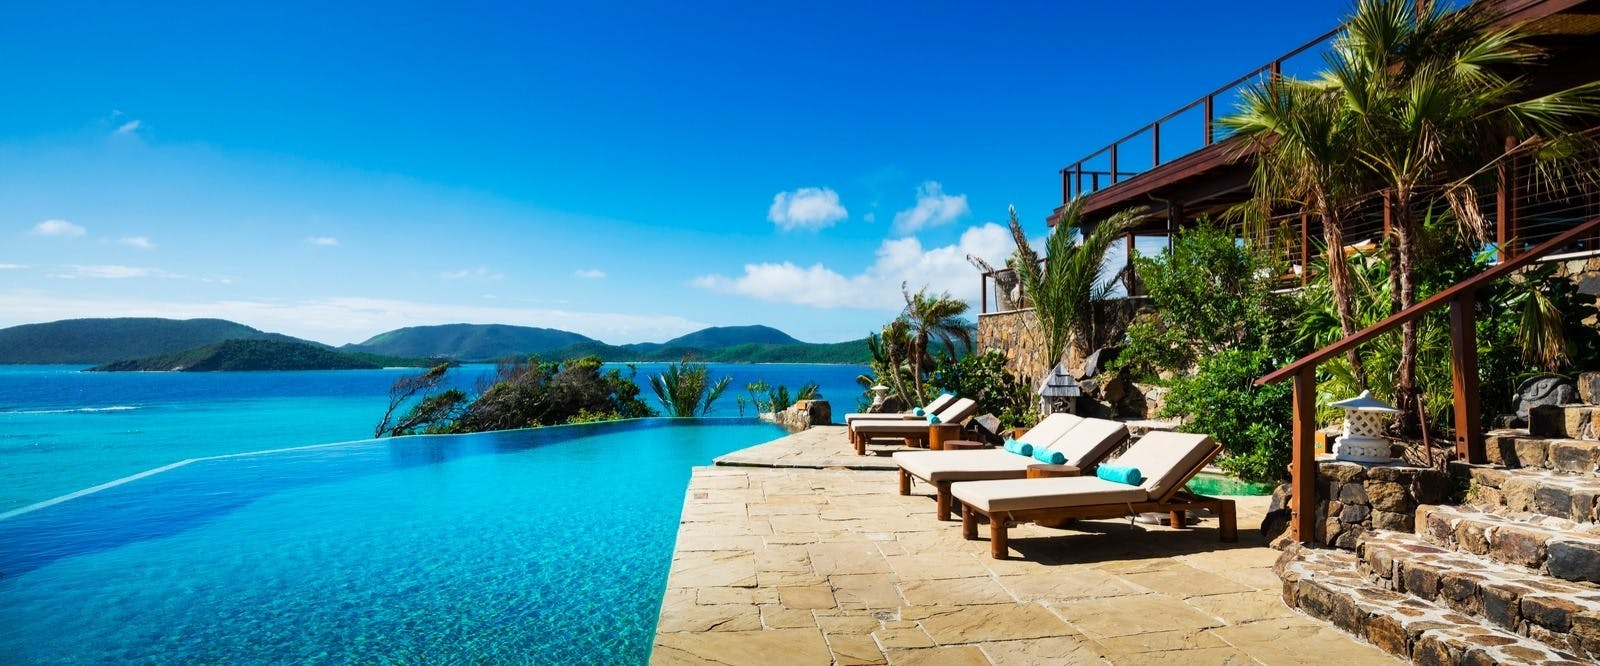 The Great House Pool at Necker Island, British Virgin Islands